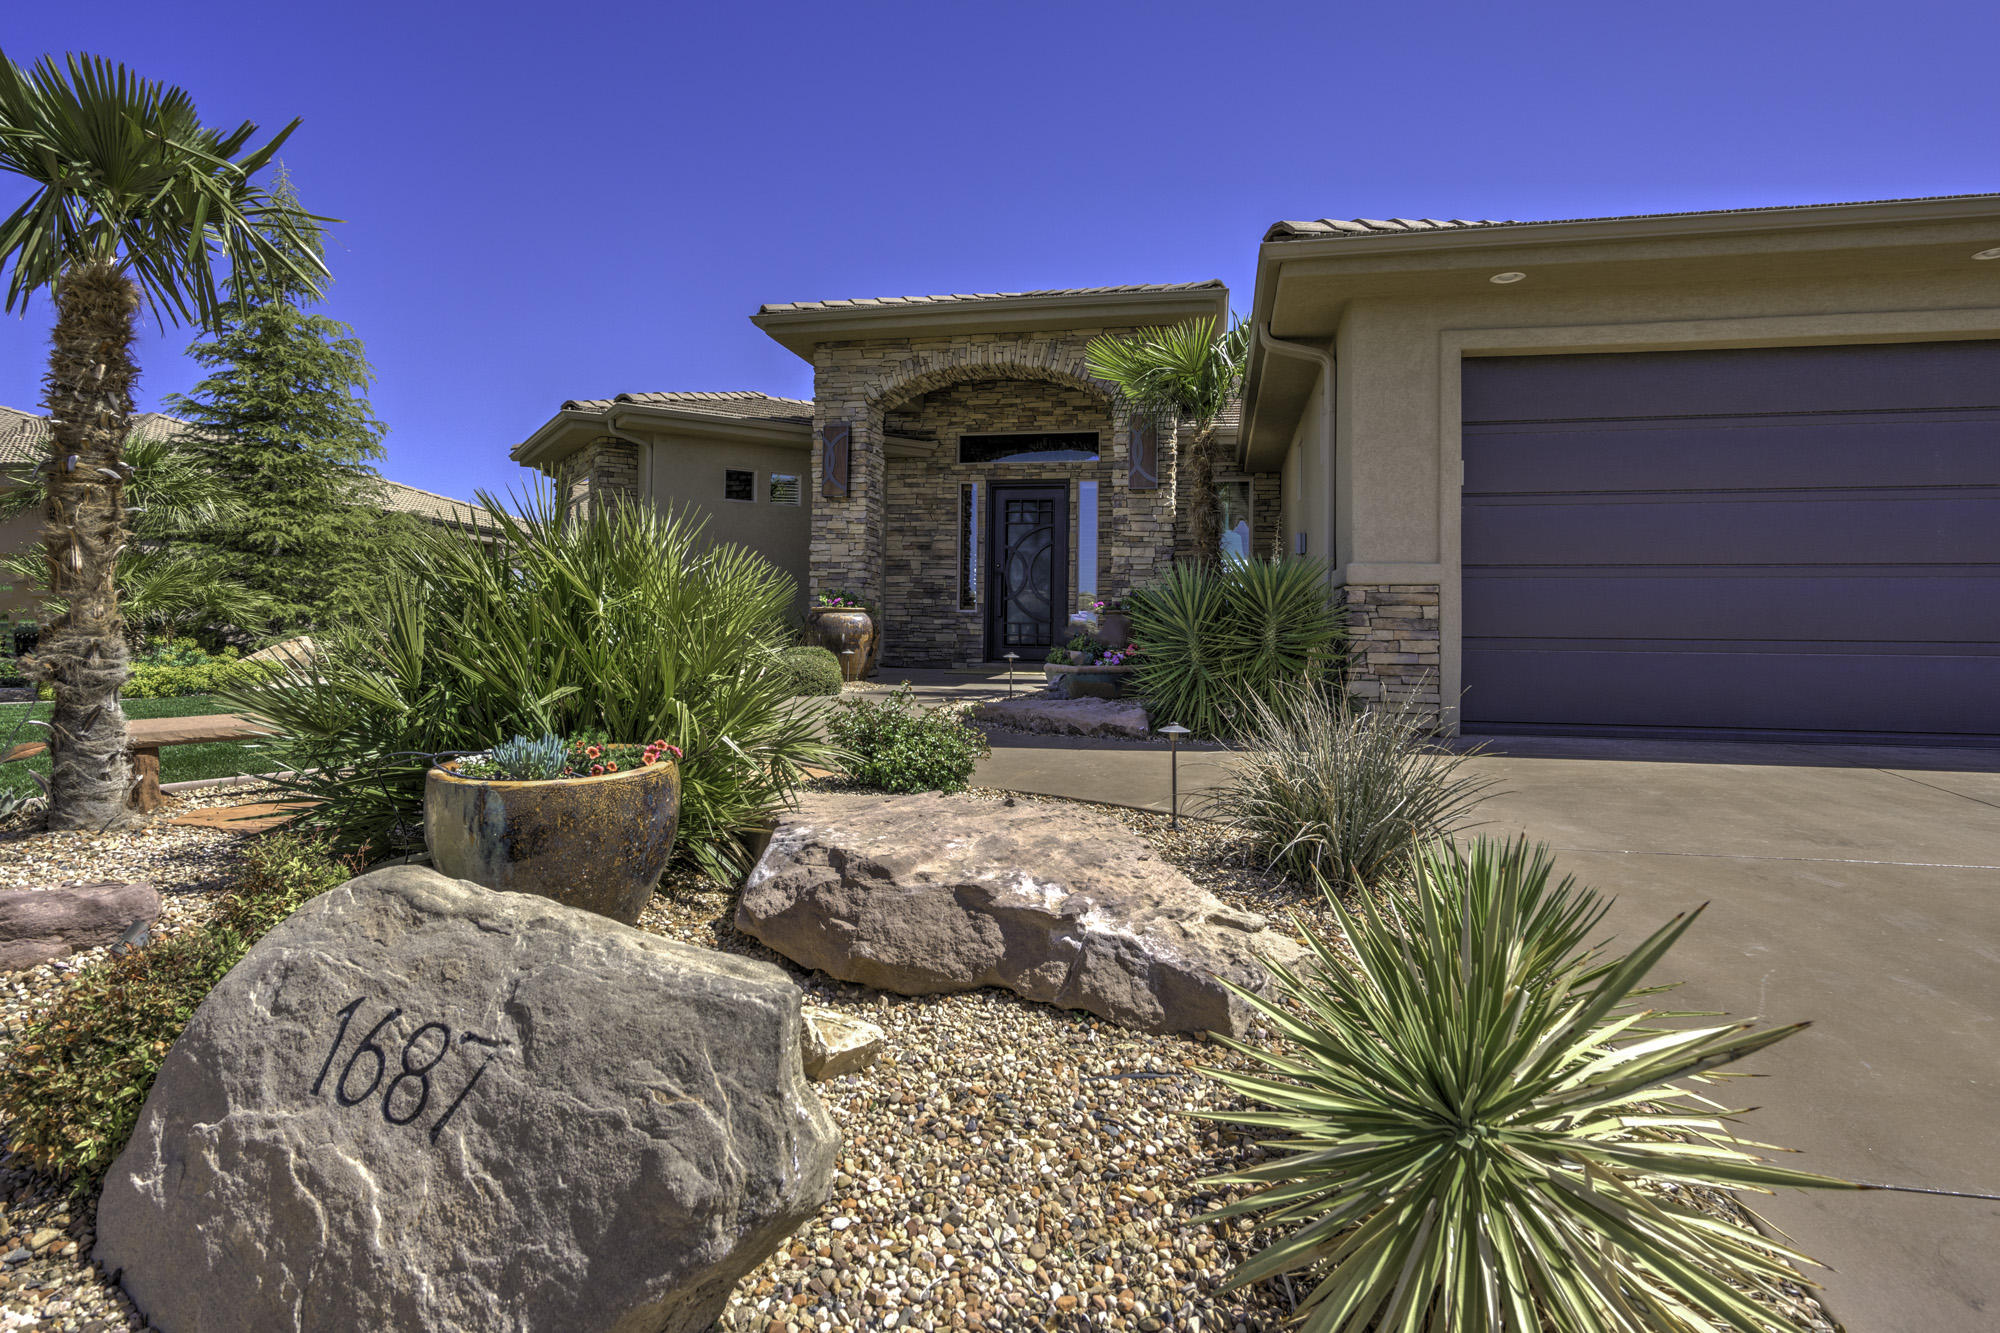 1687 View Point Dr, St George Ut 84790